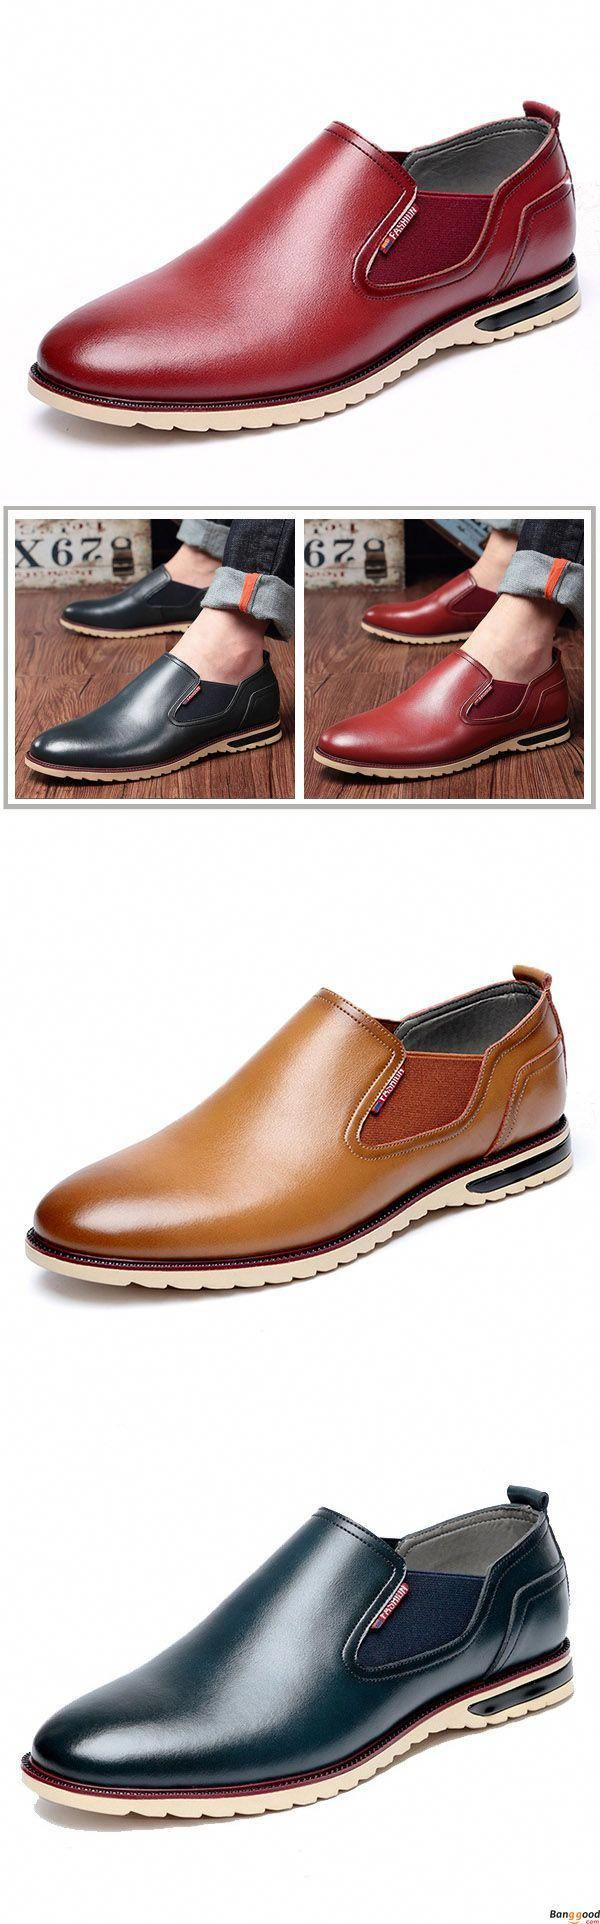 best affordable leather shoes